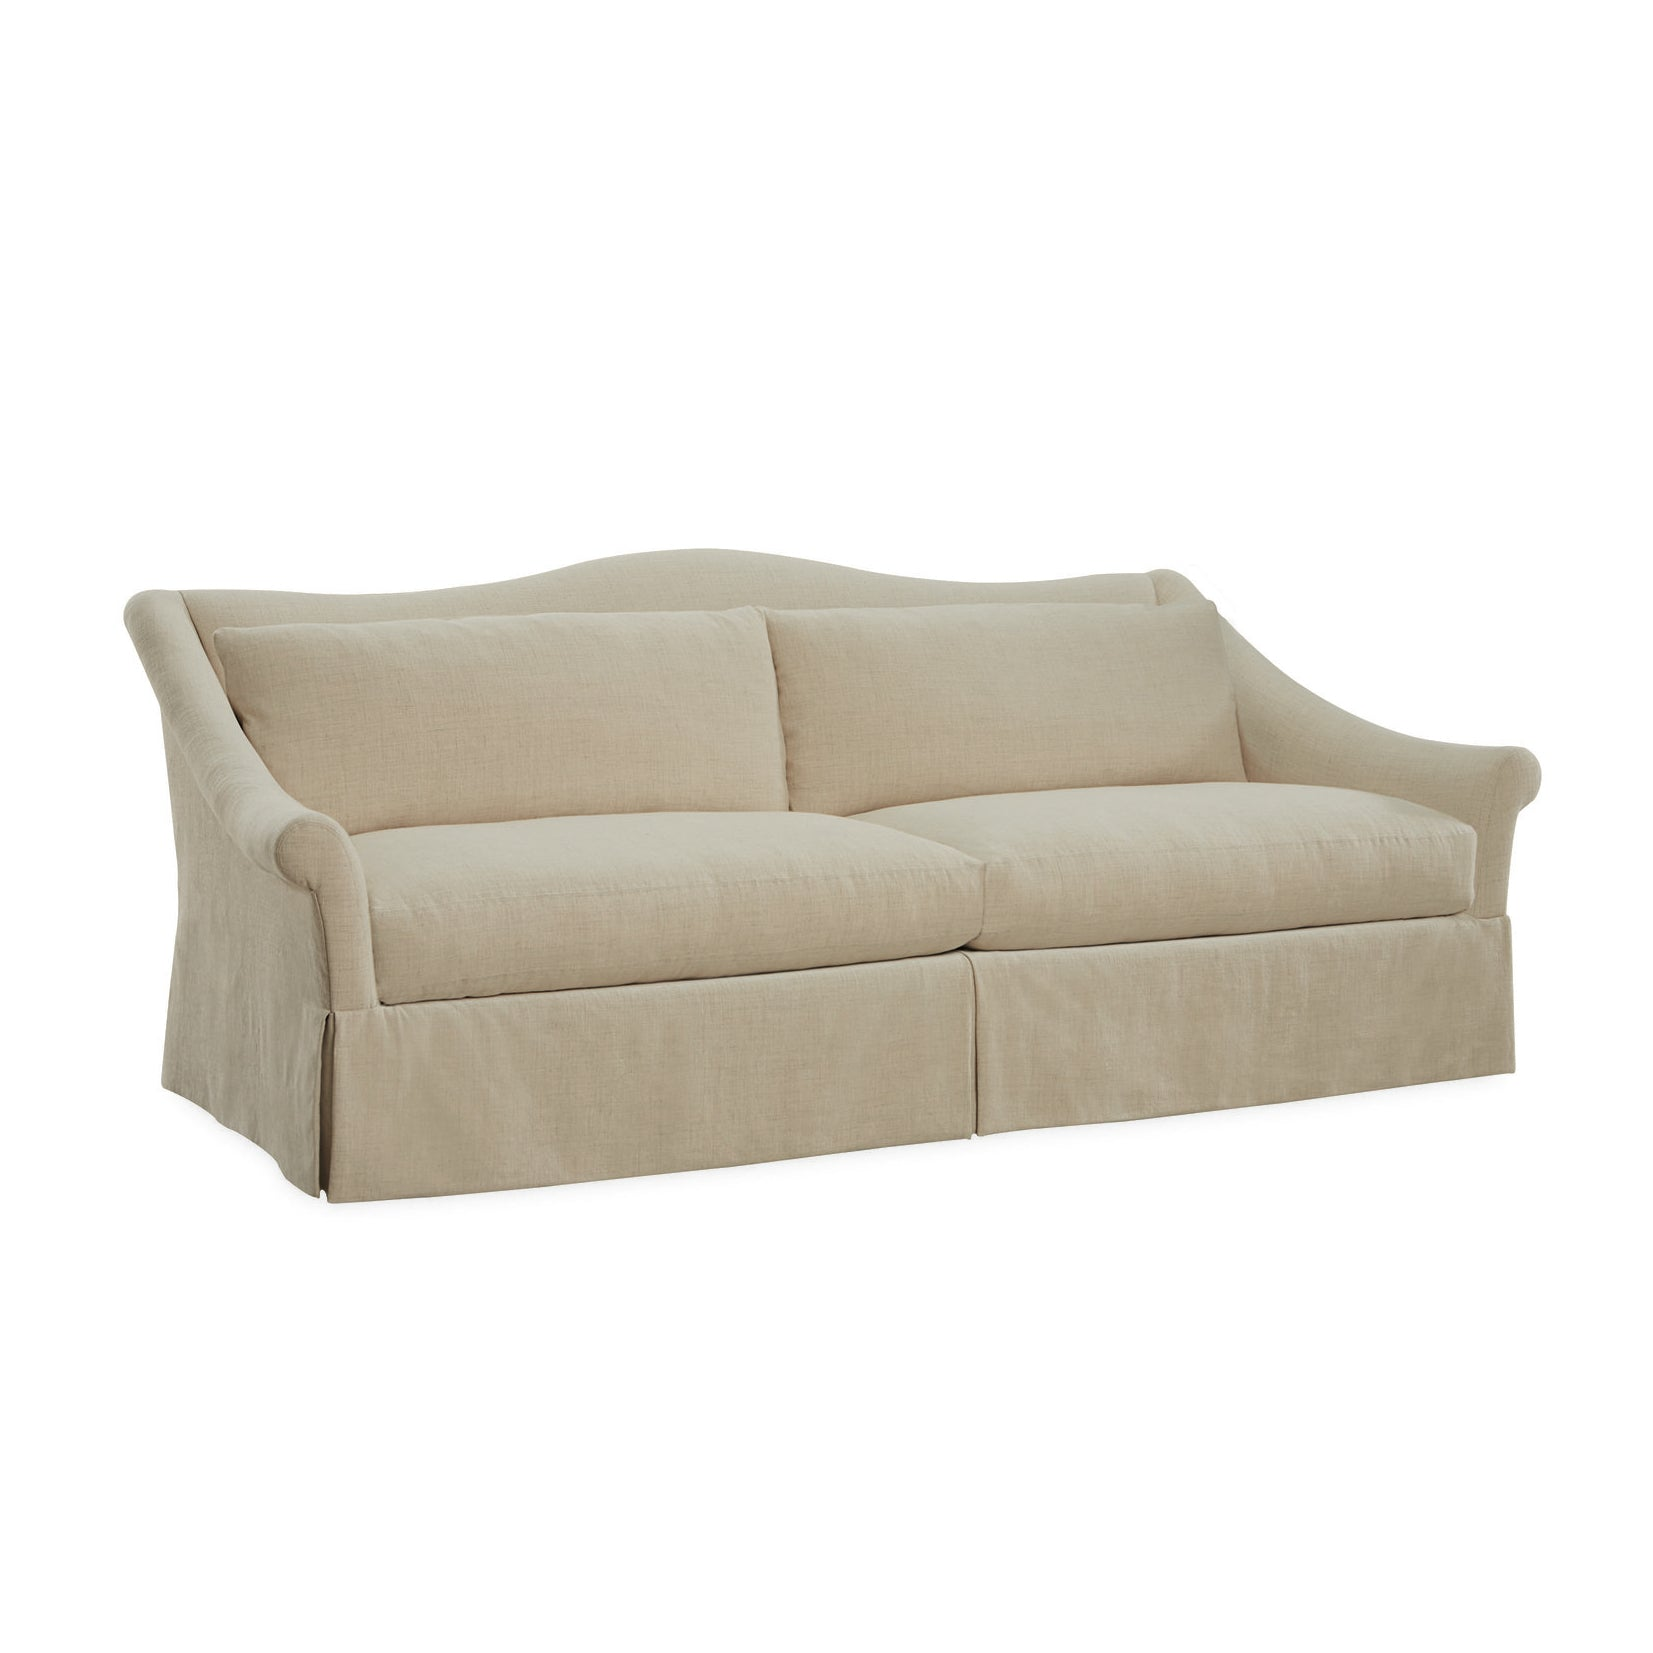 The Copenhagen long sofa